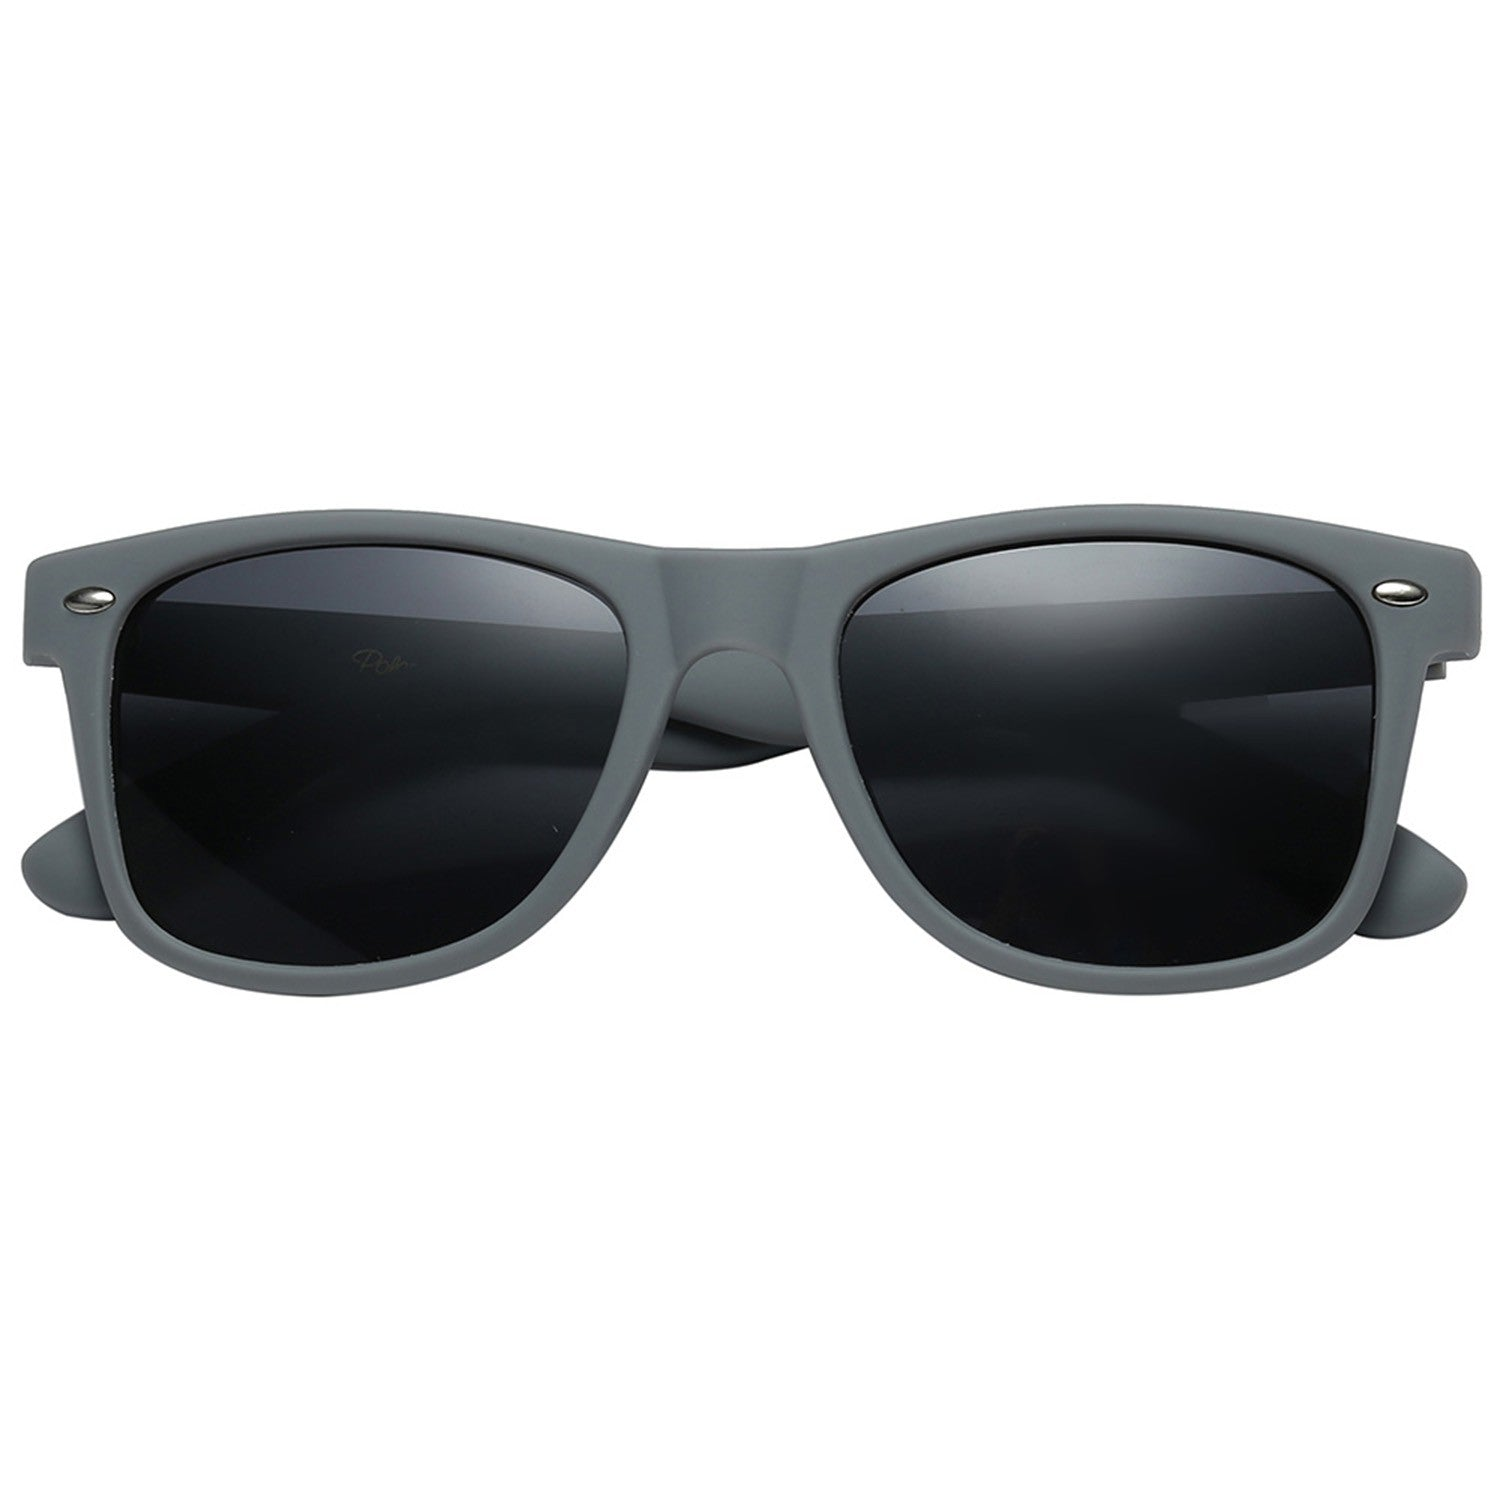 Polarspex Polarized 80's Retro Style Unisex Sunglasses with Wolf Grey Frames and Smoke Lenses